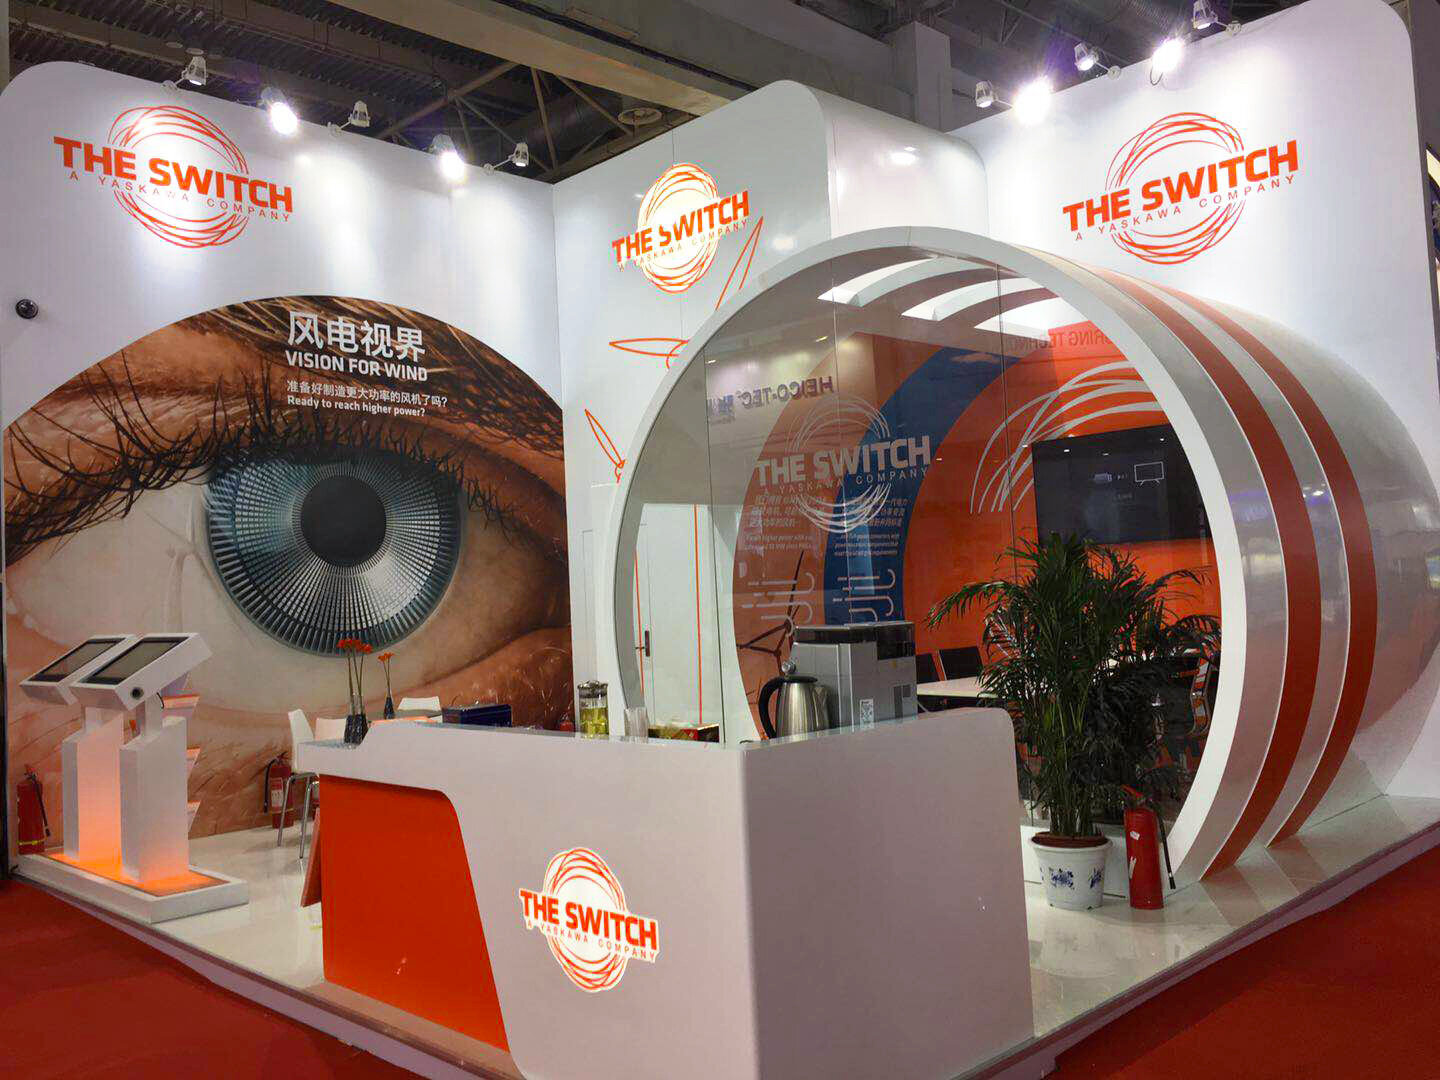 EXHIBITIONS - THE SWITCH